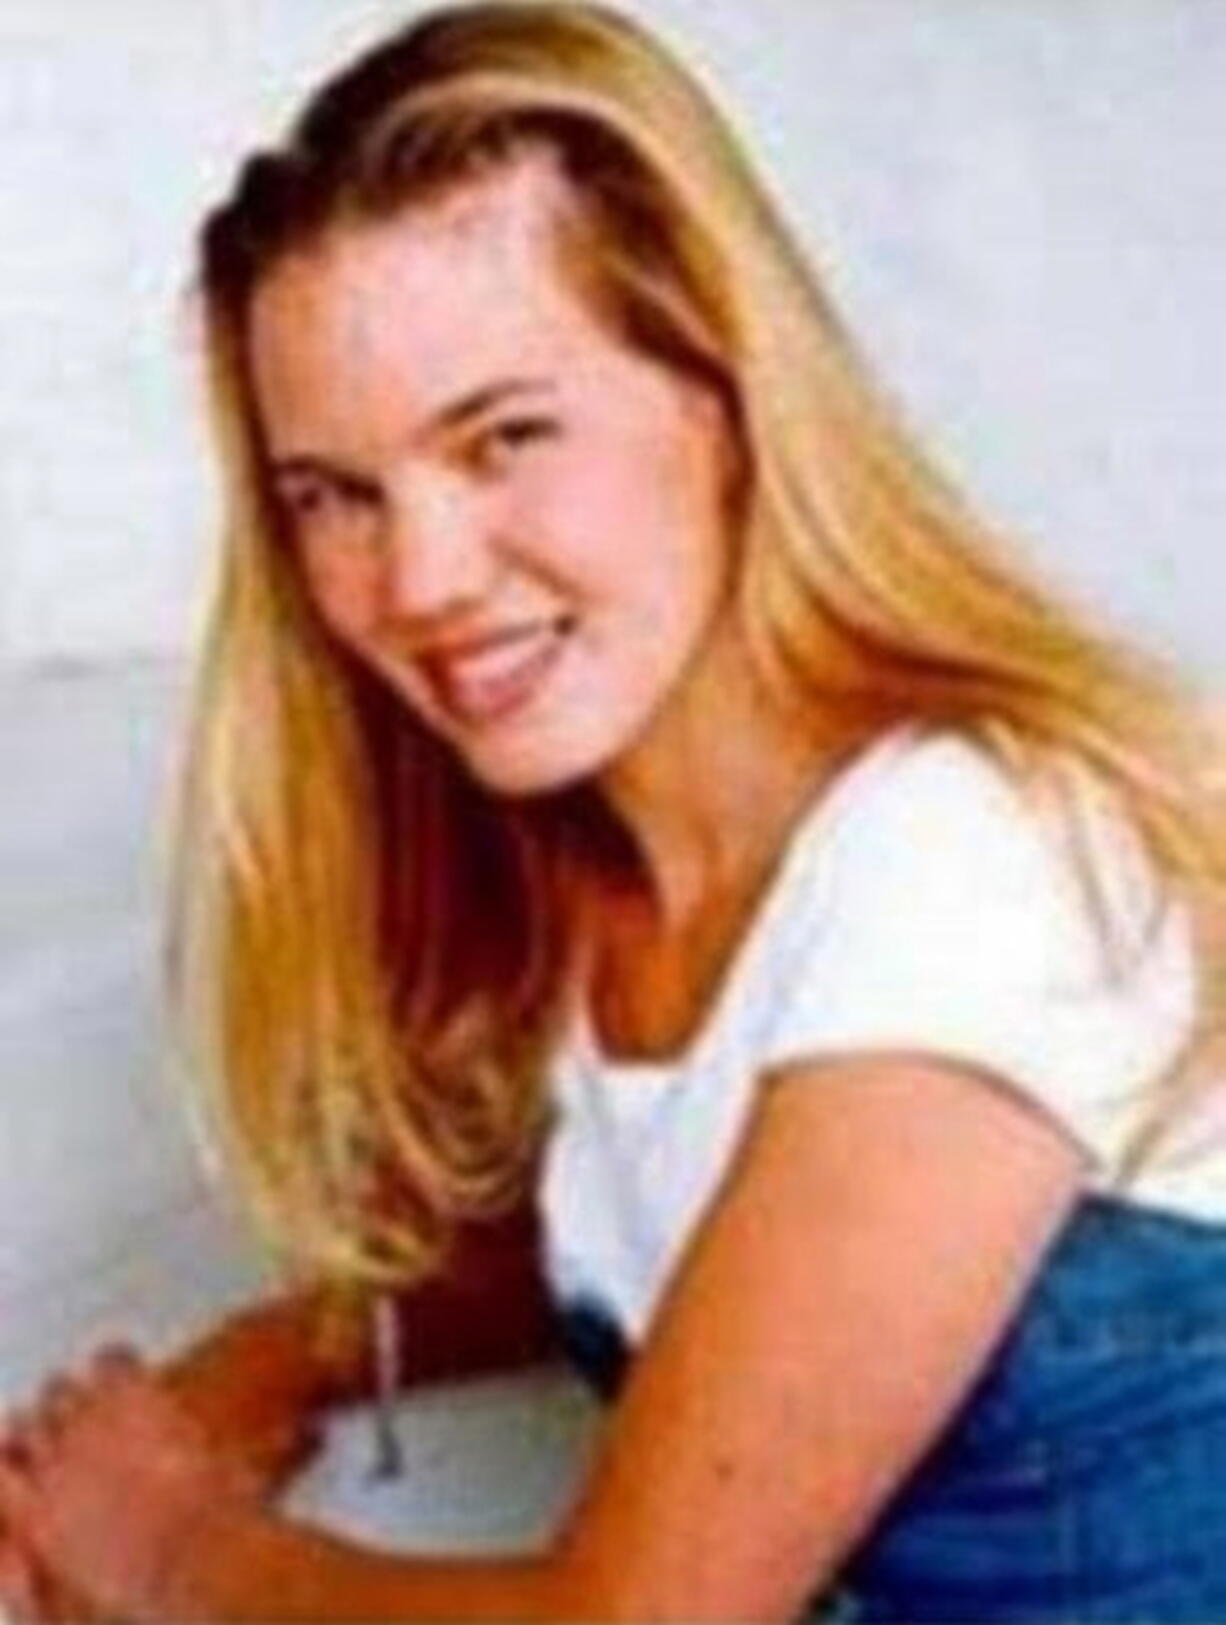 FILE - This undated photo released by the FBI shows Kristin Smart, the California Polytechnic State University, San Luis Obispo student who disappeared in 1996. The San Luis Obispo County sheriff plans a major announcement Tuesday, April 13, 2021, in the nearly 25-year mystery of the disappearance of Smart.